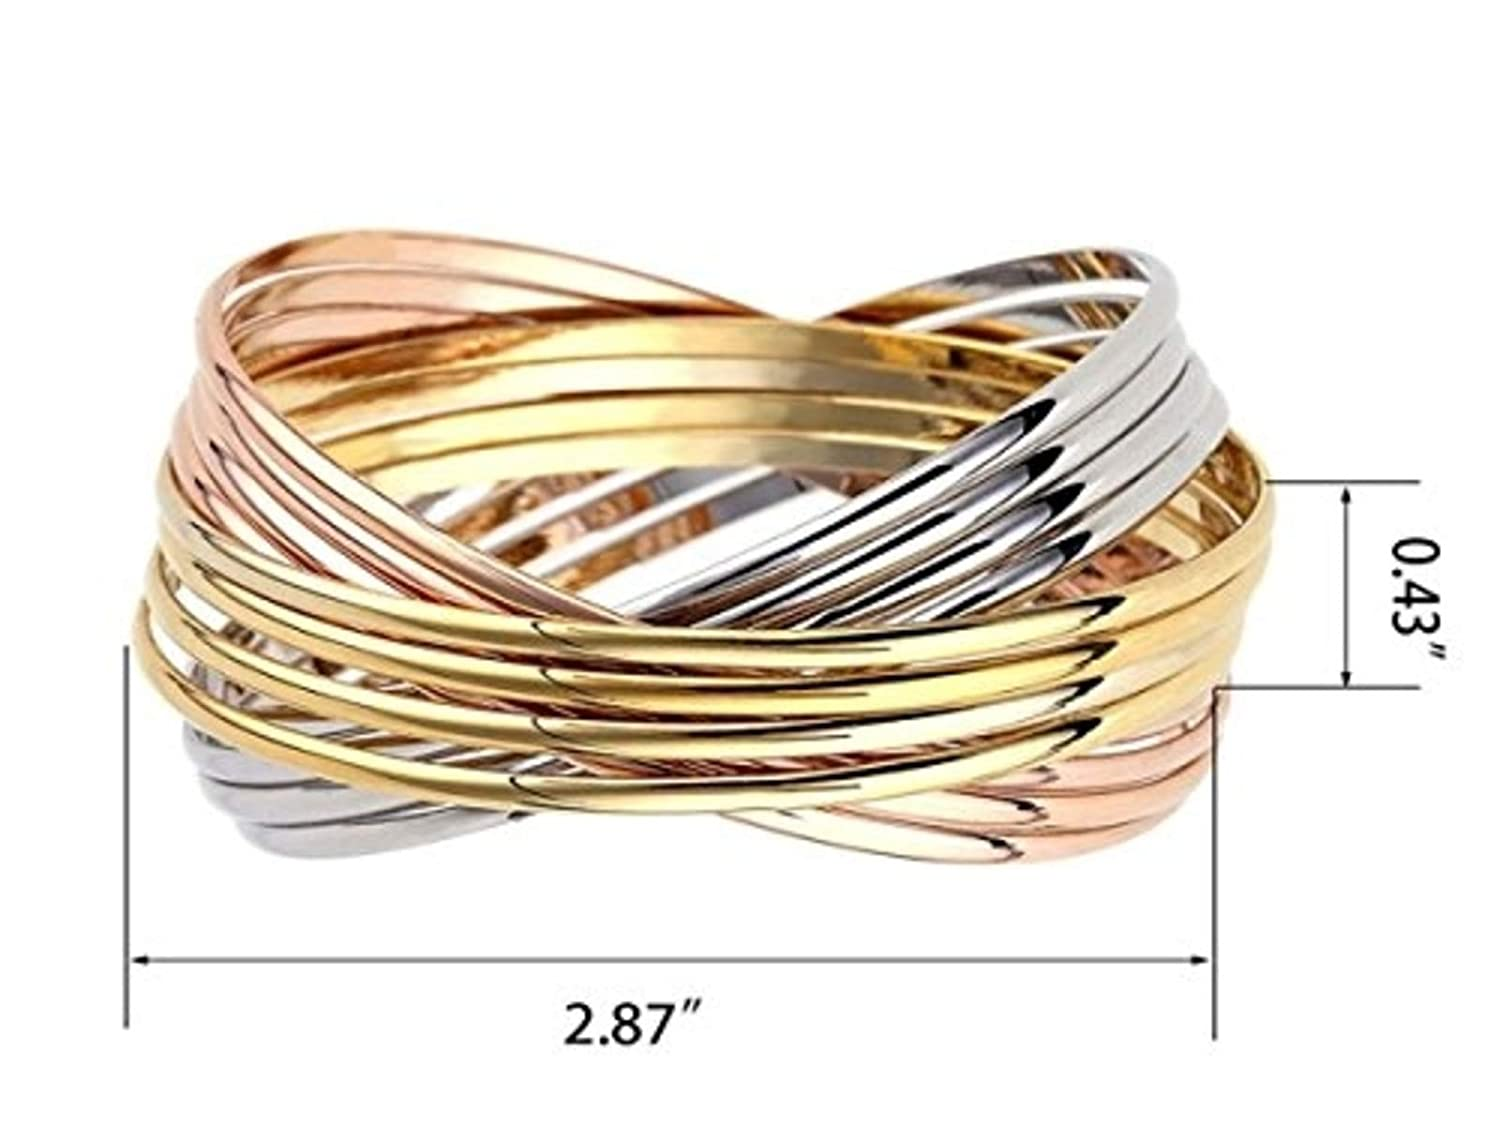 Womens Stainless Steel Bangle Bracelet Set of 7 Tri-Colored Silver//Yellow Gold//Rose Gold Tones Minimalist Jewelry Men Stackable Fashion Trendy Boho Unique Bangles Gifts arm Jewelry Cuff